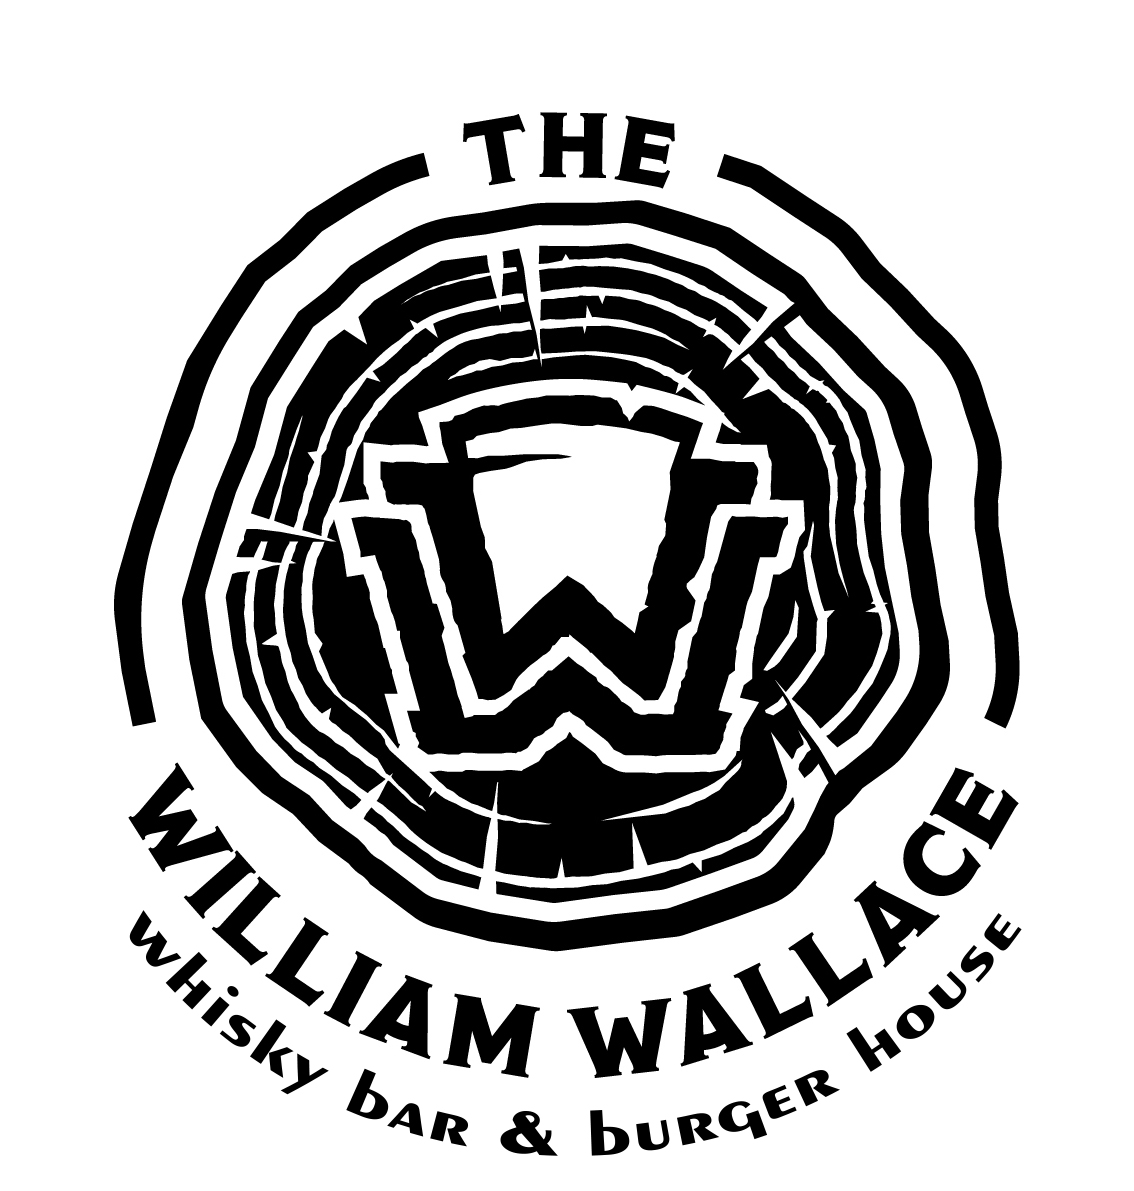 The William Wallce - whisky bar & burger house